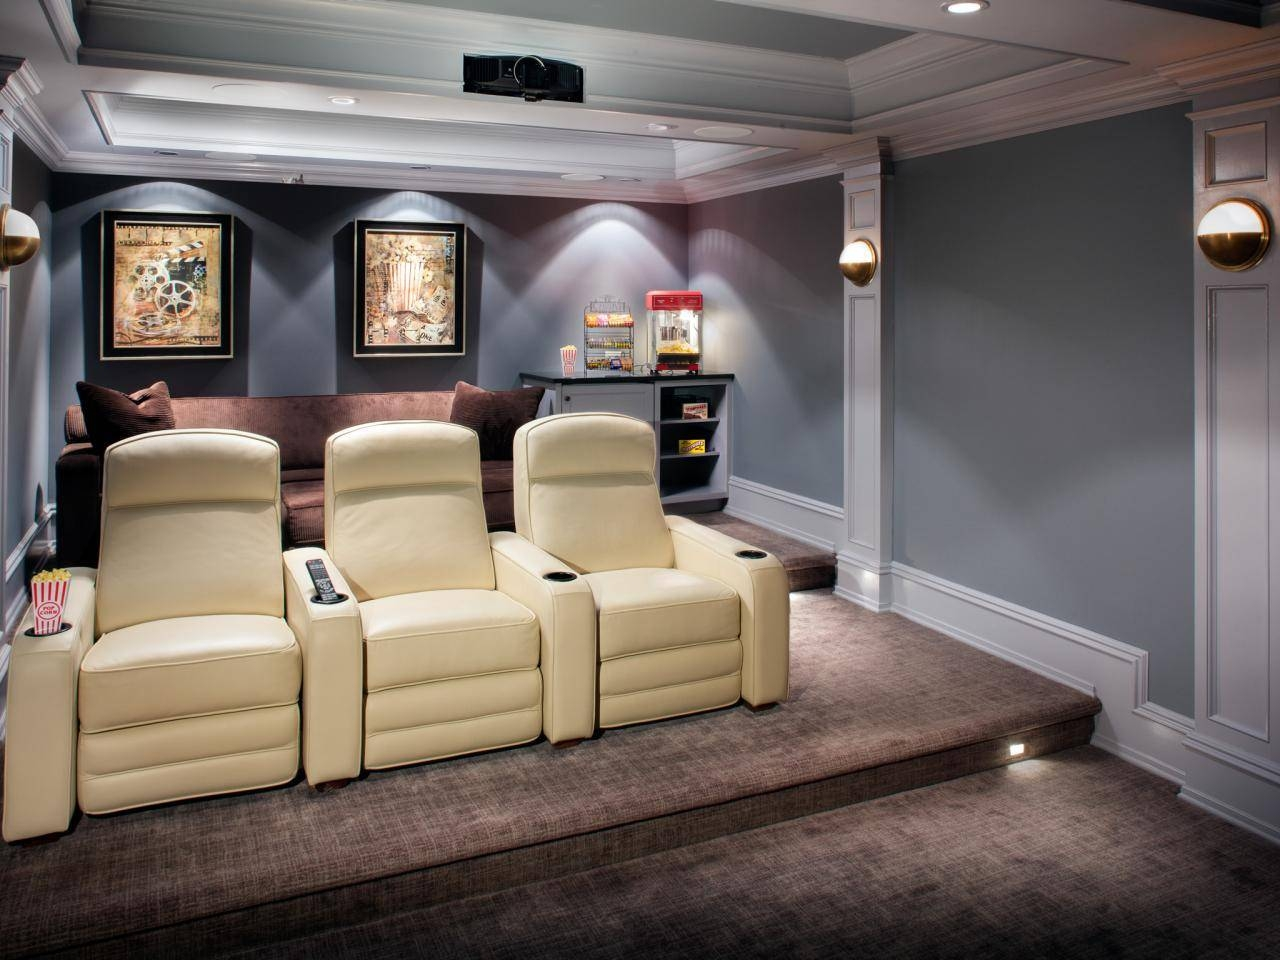 Flooring: Home Theatre With Reclining Chairs And Wall Art Also Throughout Newest Home Theater Wall Art (View 12 of 30)